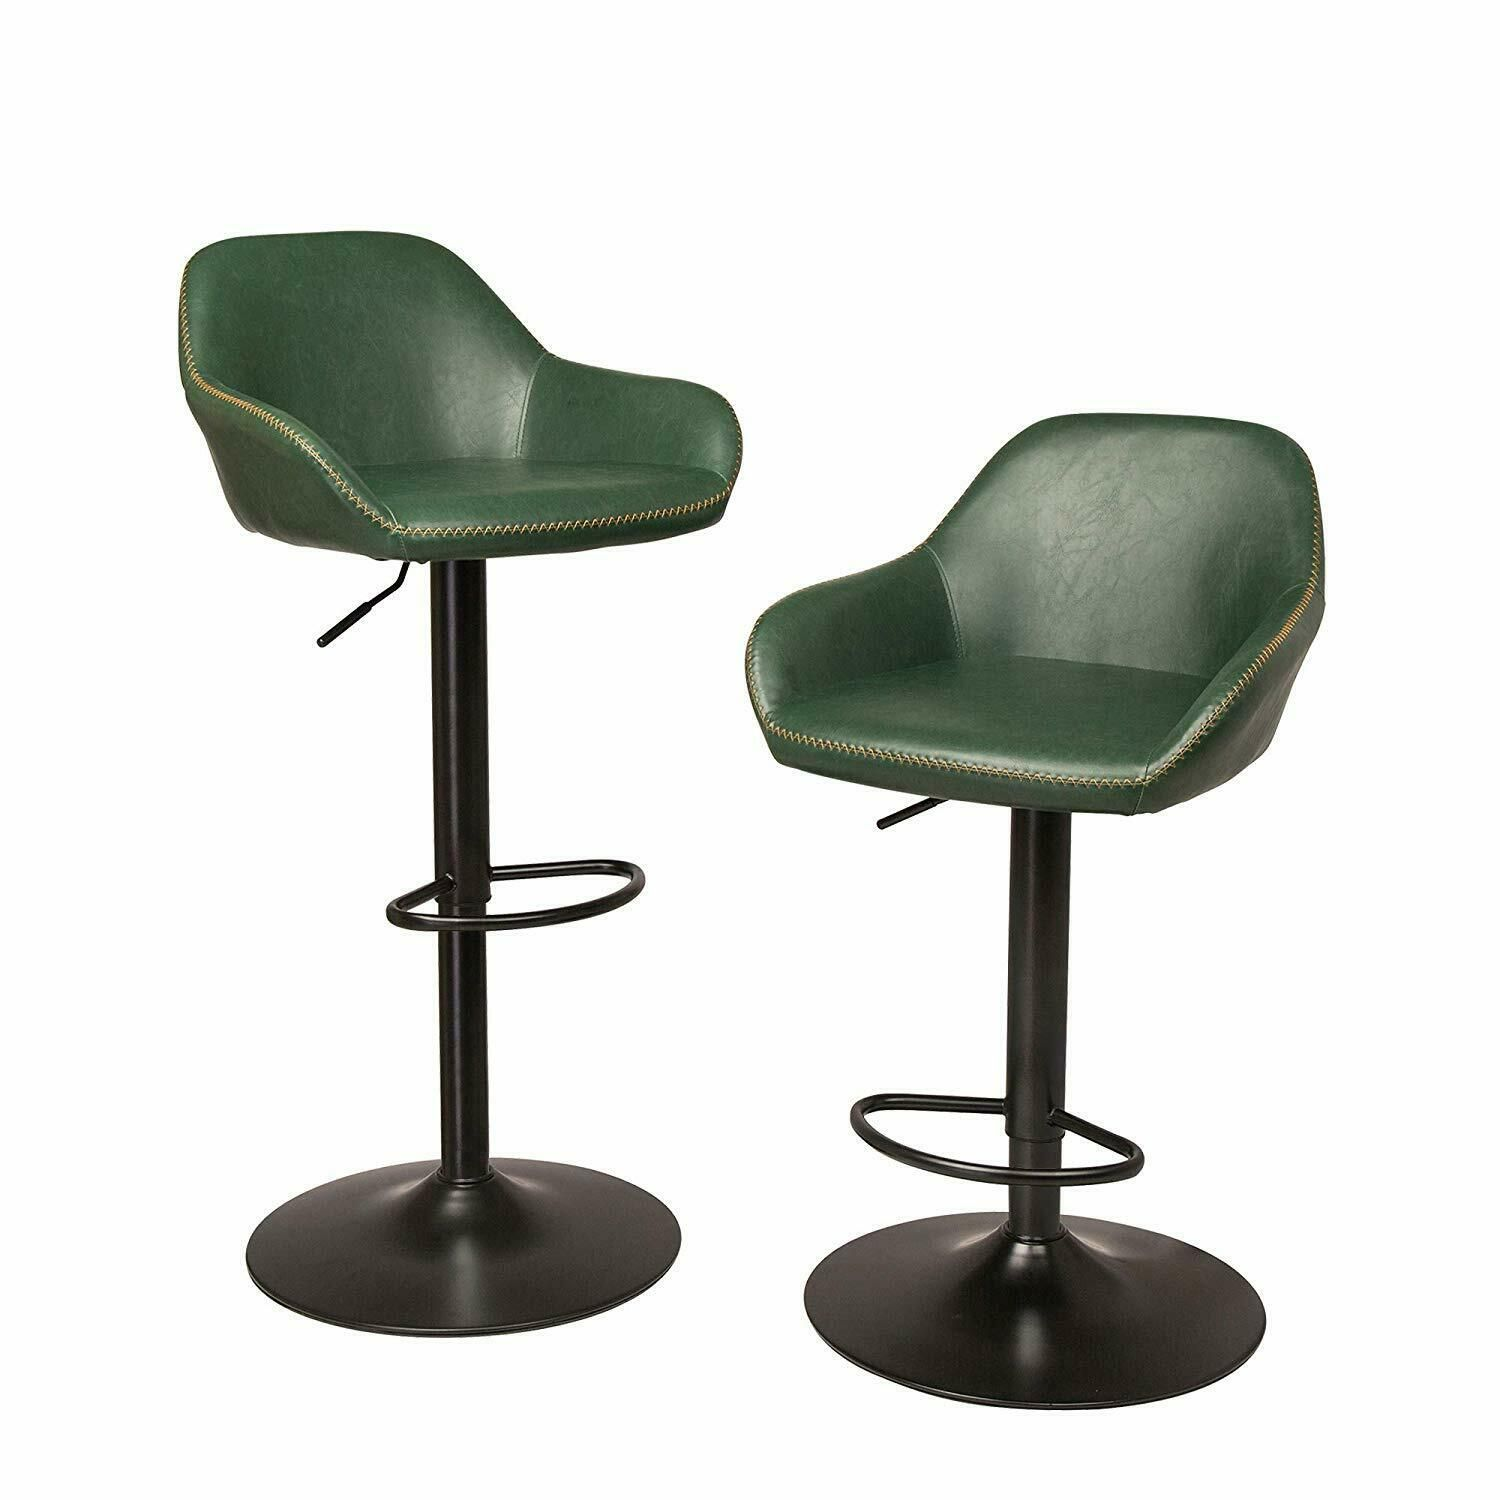 Groovy Glitzhome Bar Stools Pu Leather Adjustable Swivel Bistro Pub Gmtry Best Dining Table And Chair Ideas Images Gmtryco